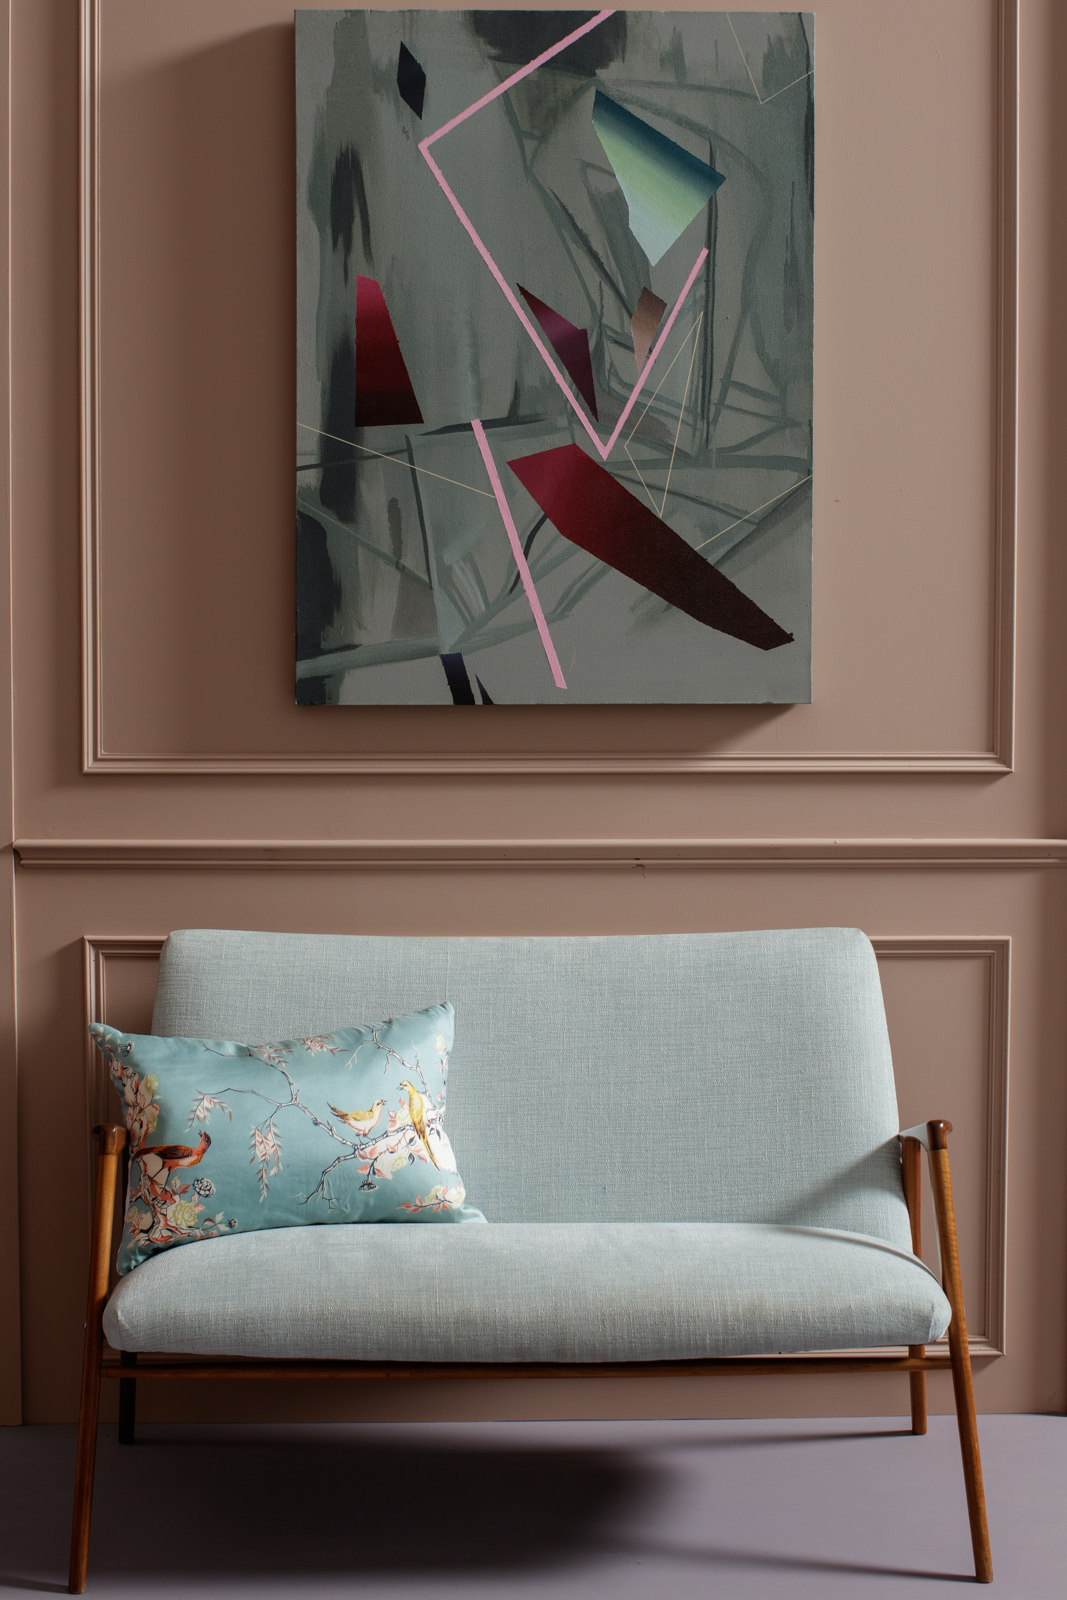 Kingston Lafferty Design interior with Katie Larmour Couture Cushions created from repurposed rare vintage and antique designer Liberty of London scarves as home accessories5.jpg